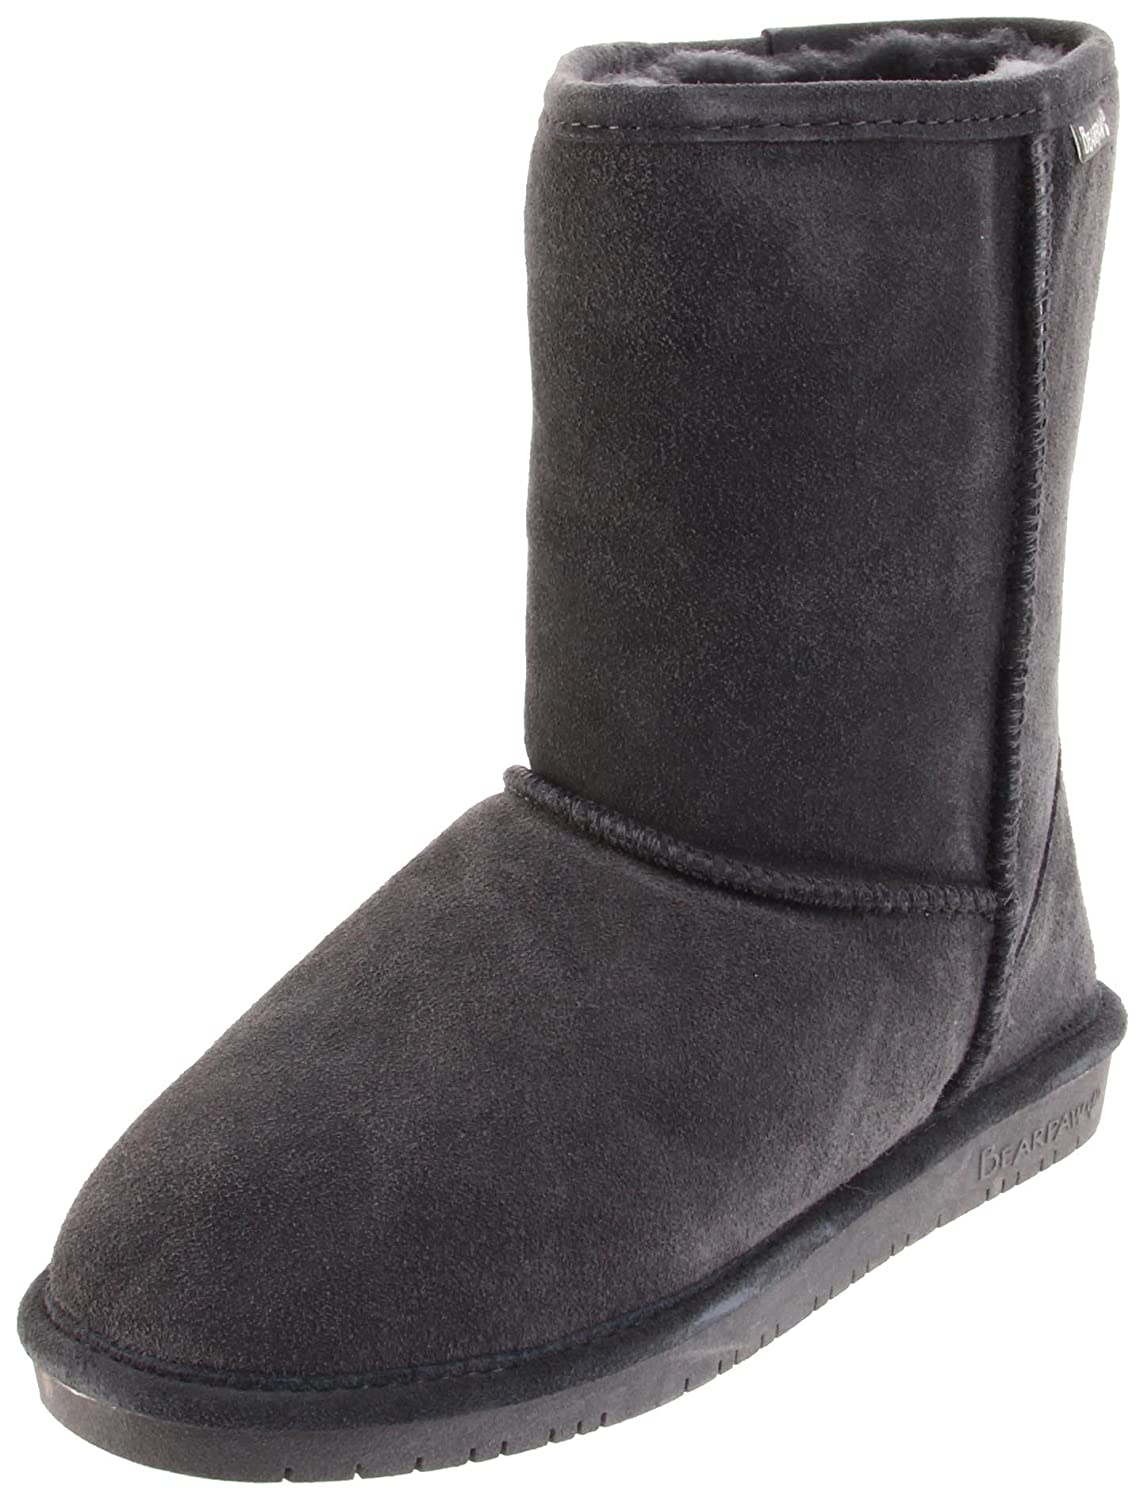 Bearpaw Women's Emma Short Fashion Boot Outdoor B004Q9N508 Athletic & Outdoor Boot 9eb286